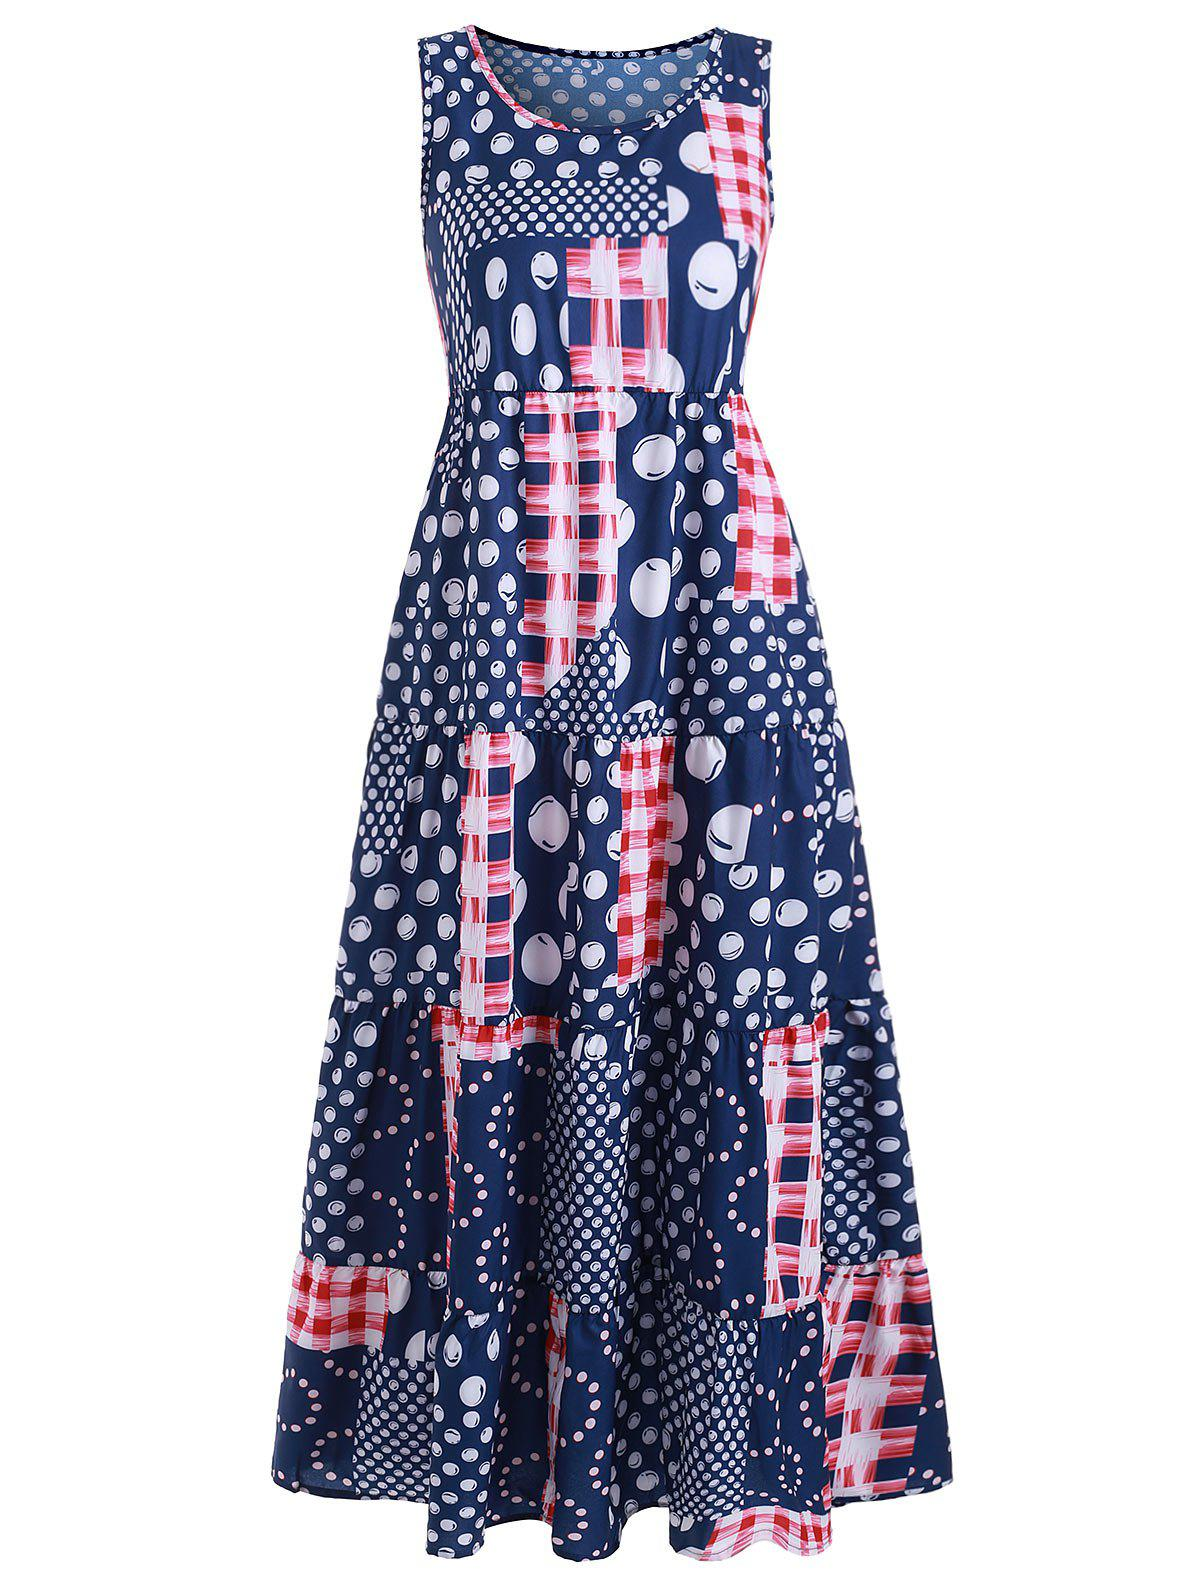 Bohemian Polka Dot Flounce Long Dress - BLUE 2XL